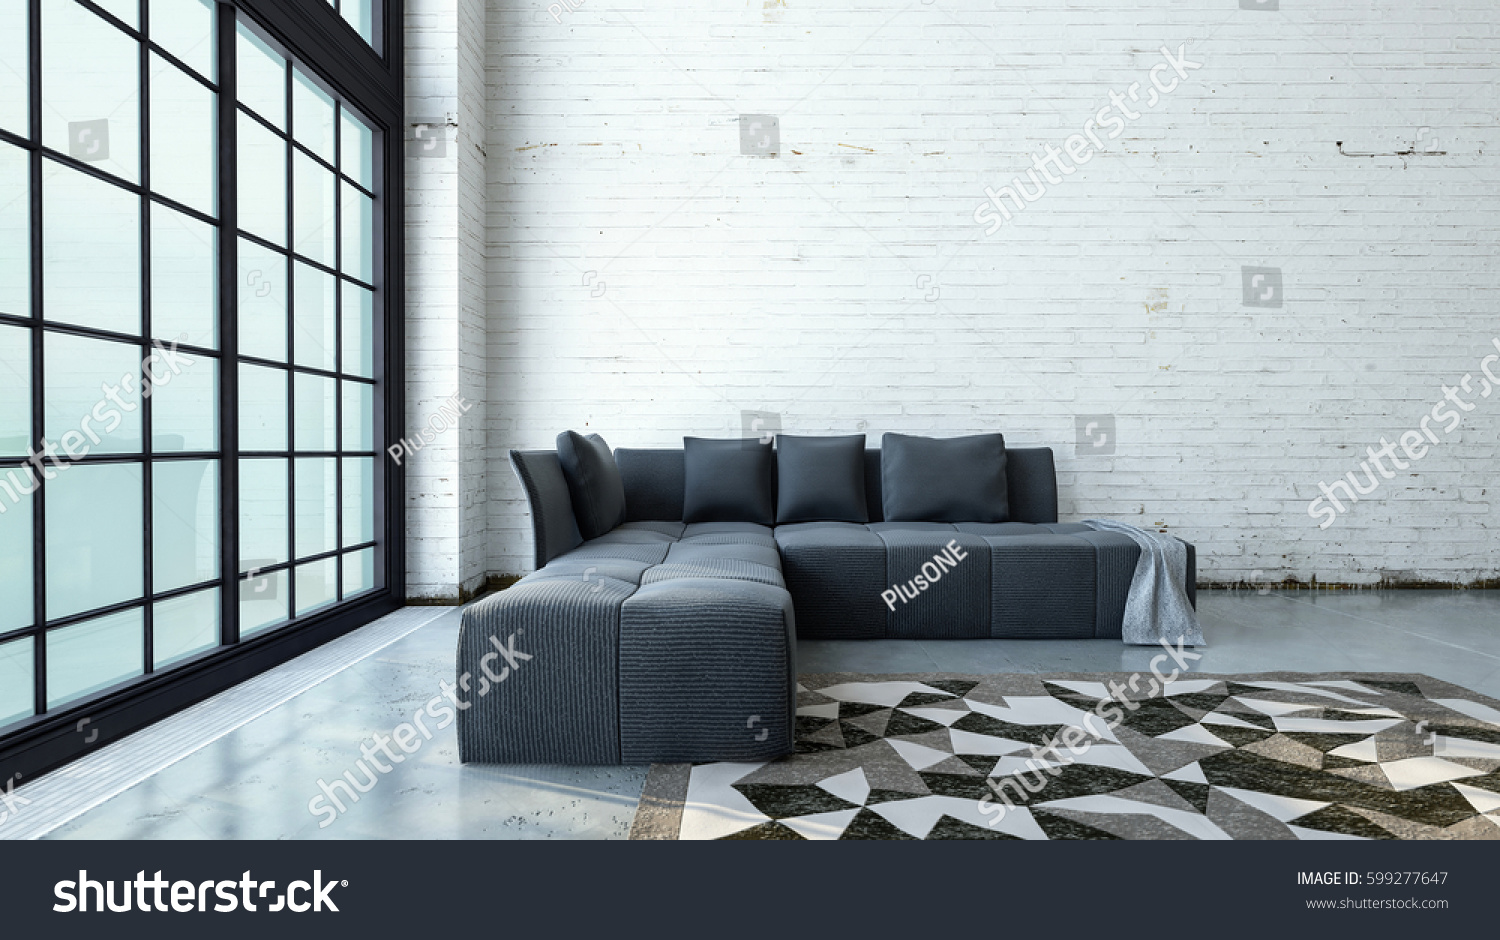 Minimalist Modern Loft Living Room Interior With Huge Windows And A Modular Grey Settee On